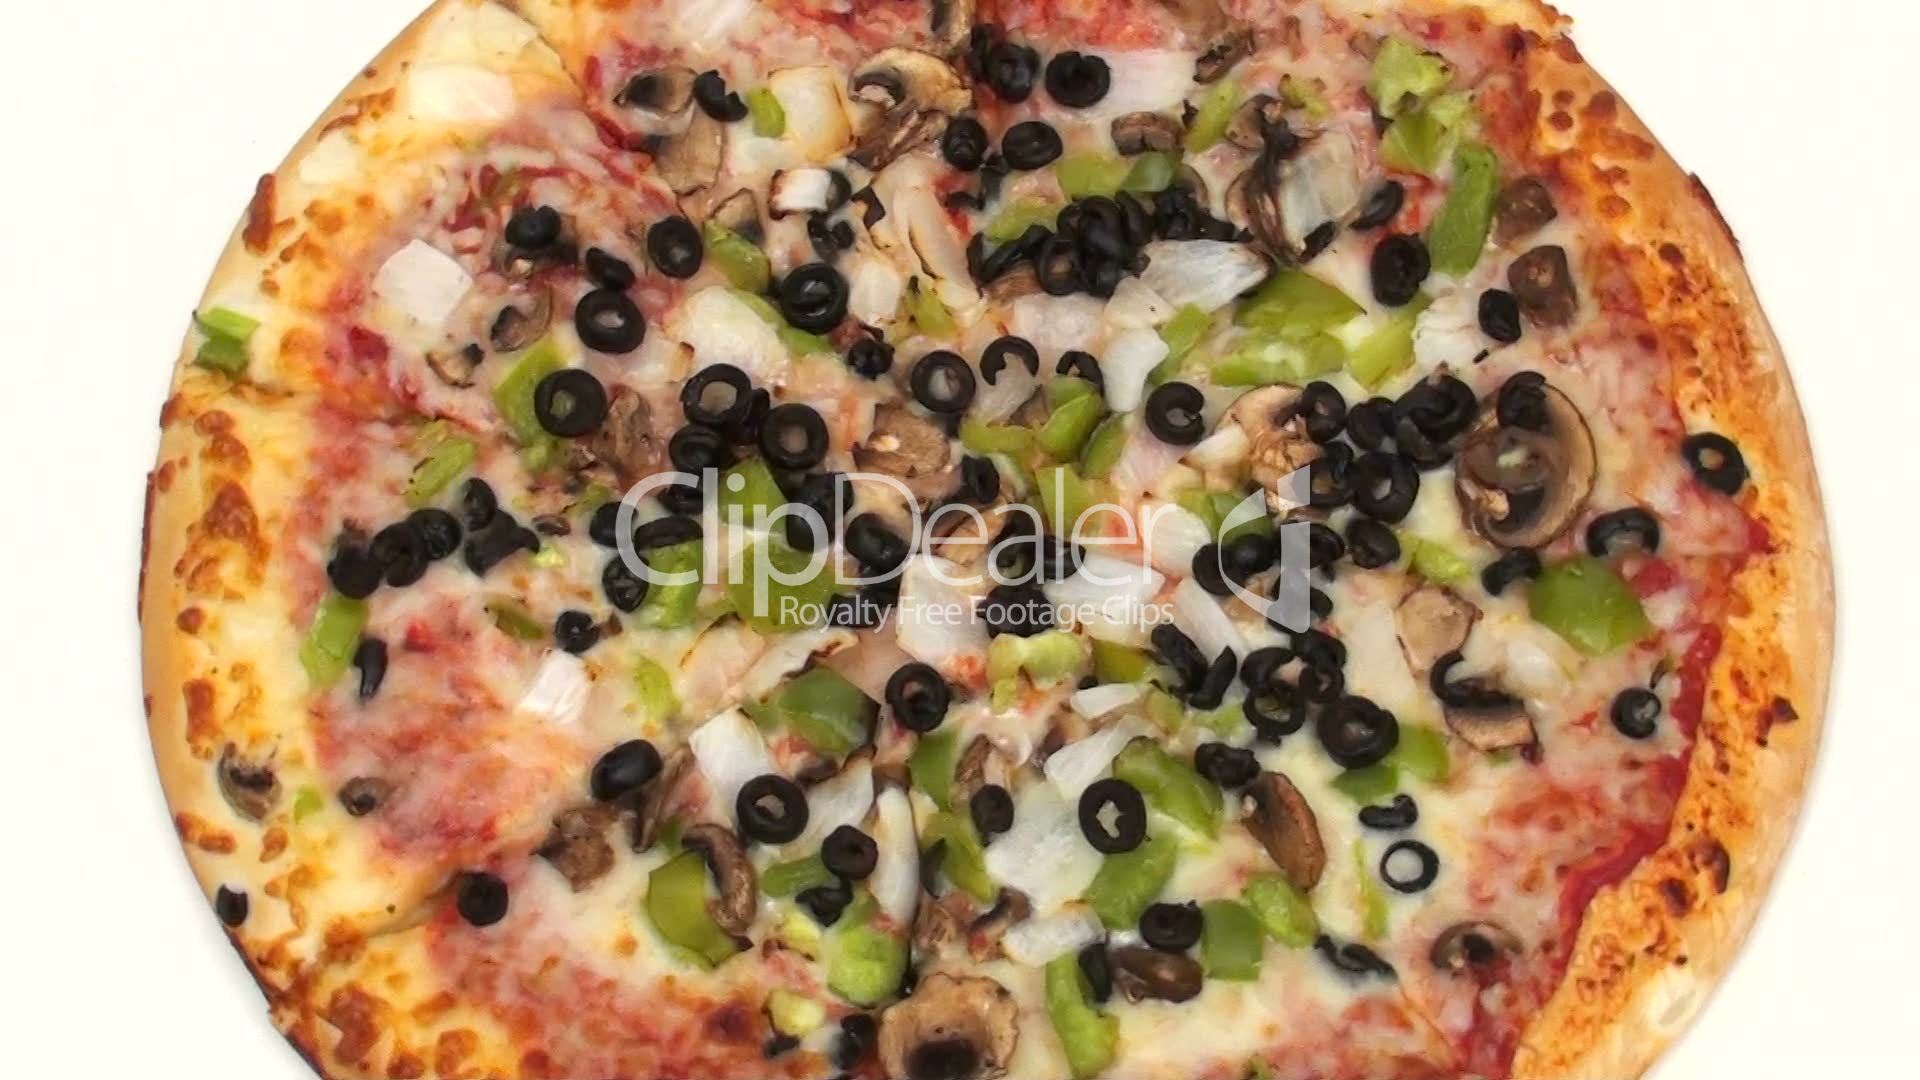 Vegetarische Pizza Vegetarische Pizza Royalty Free Video And Stock Footage